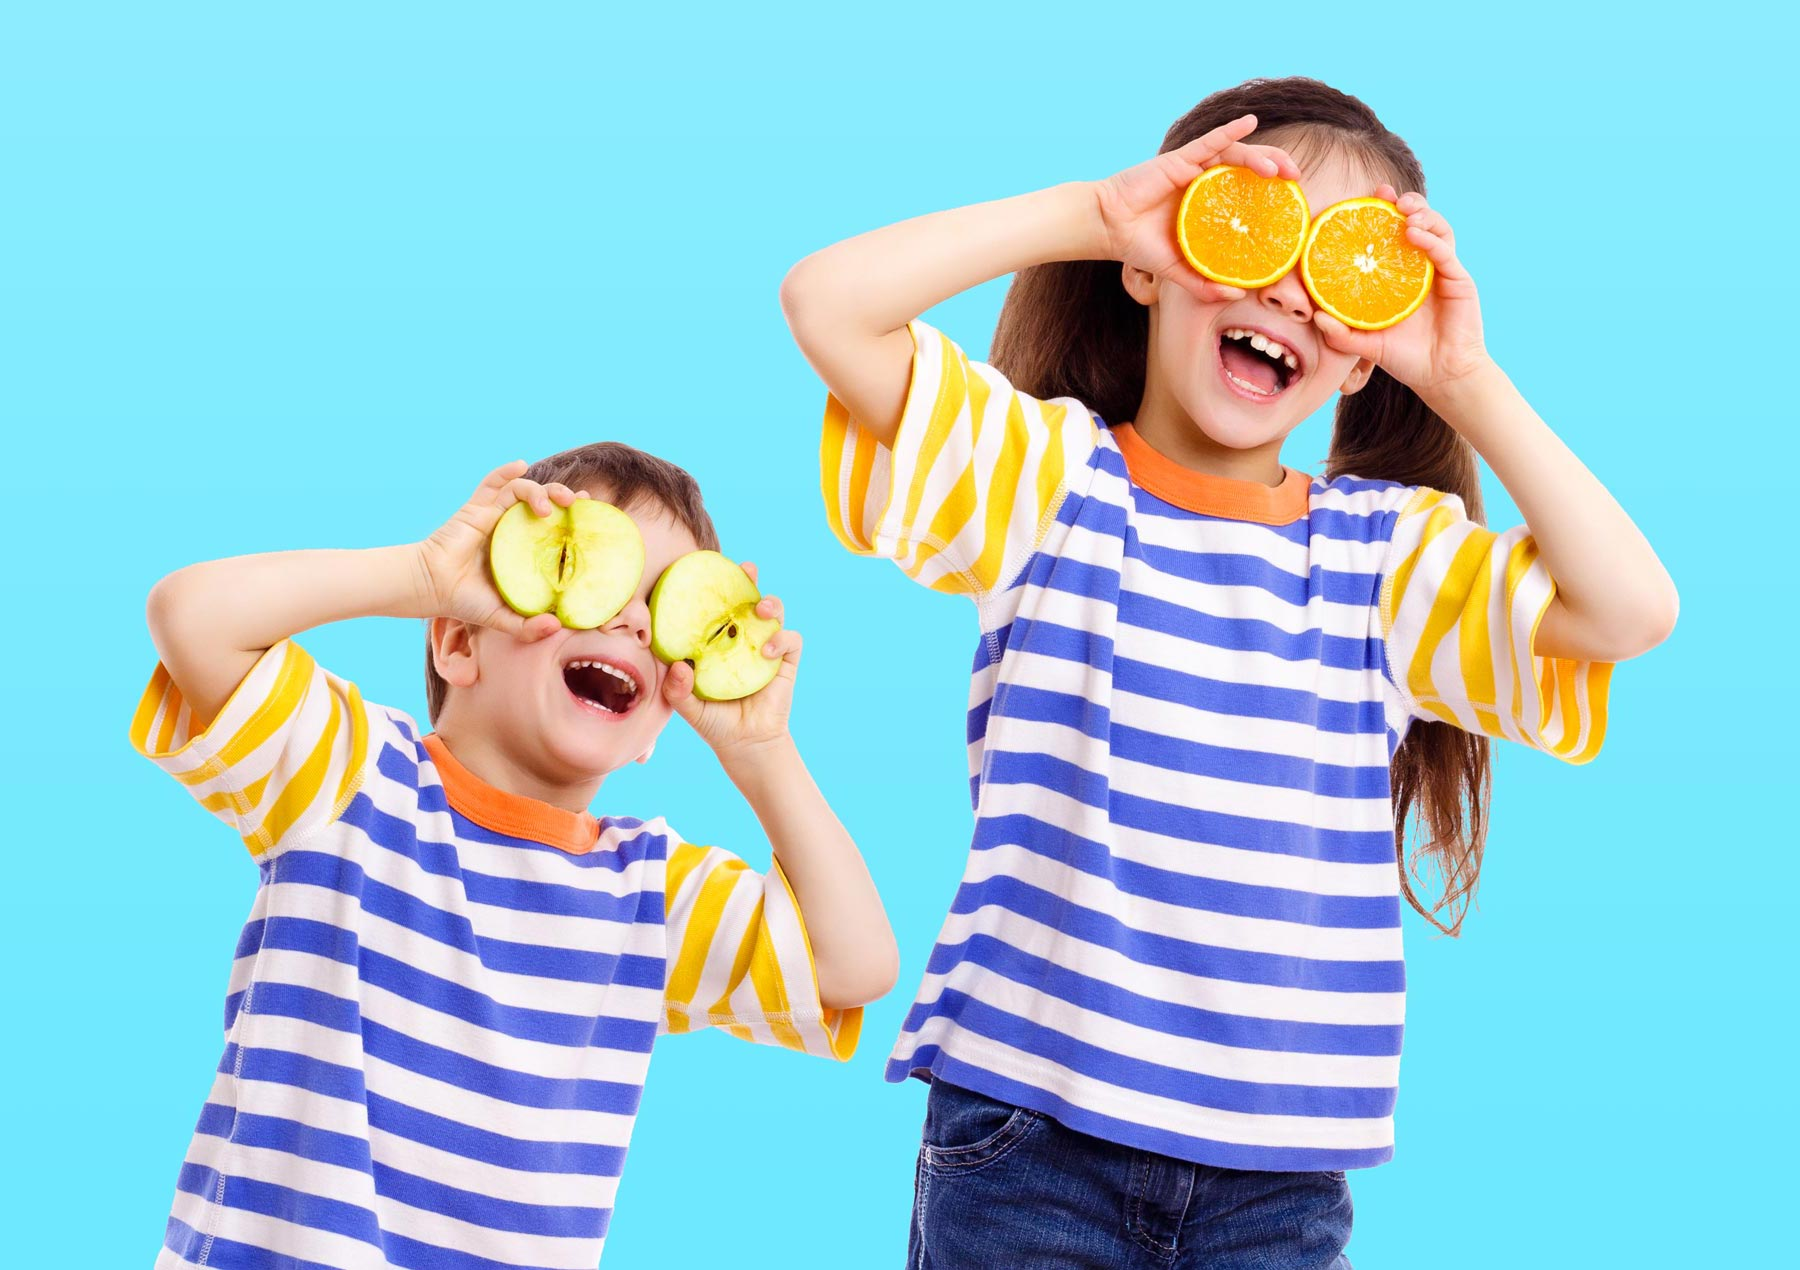 Two Children with Fruit Binoculars Searching for Hunky Dory Products